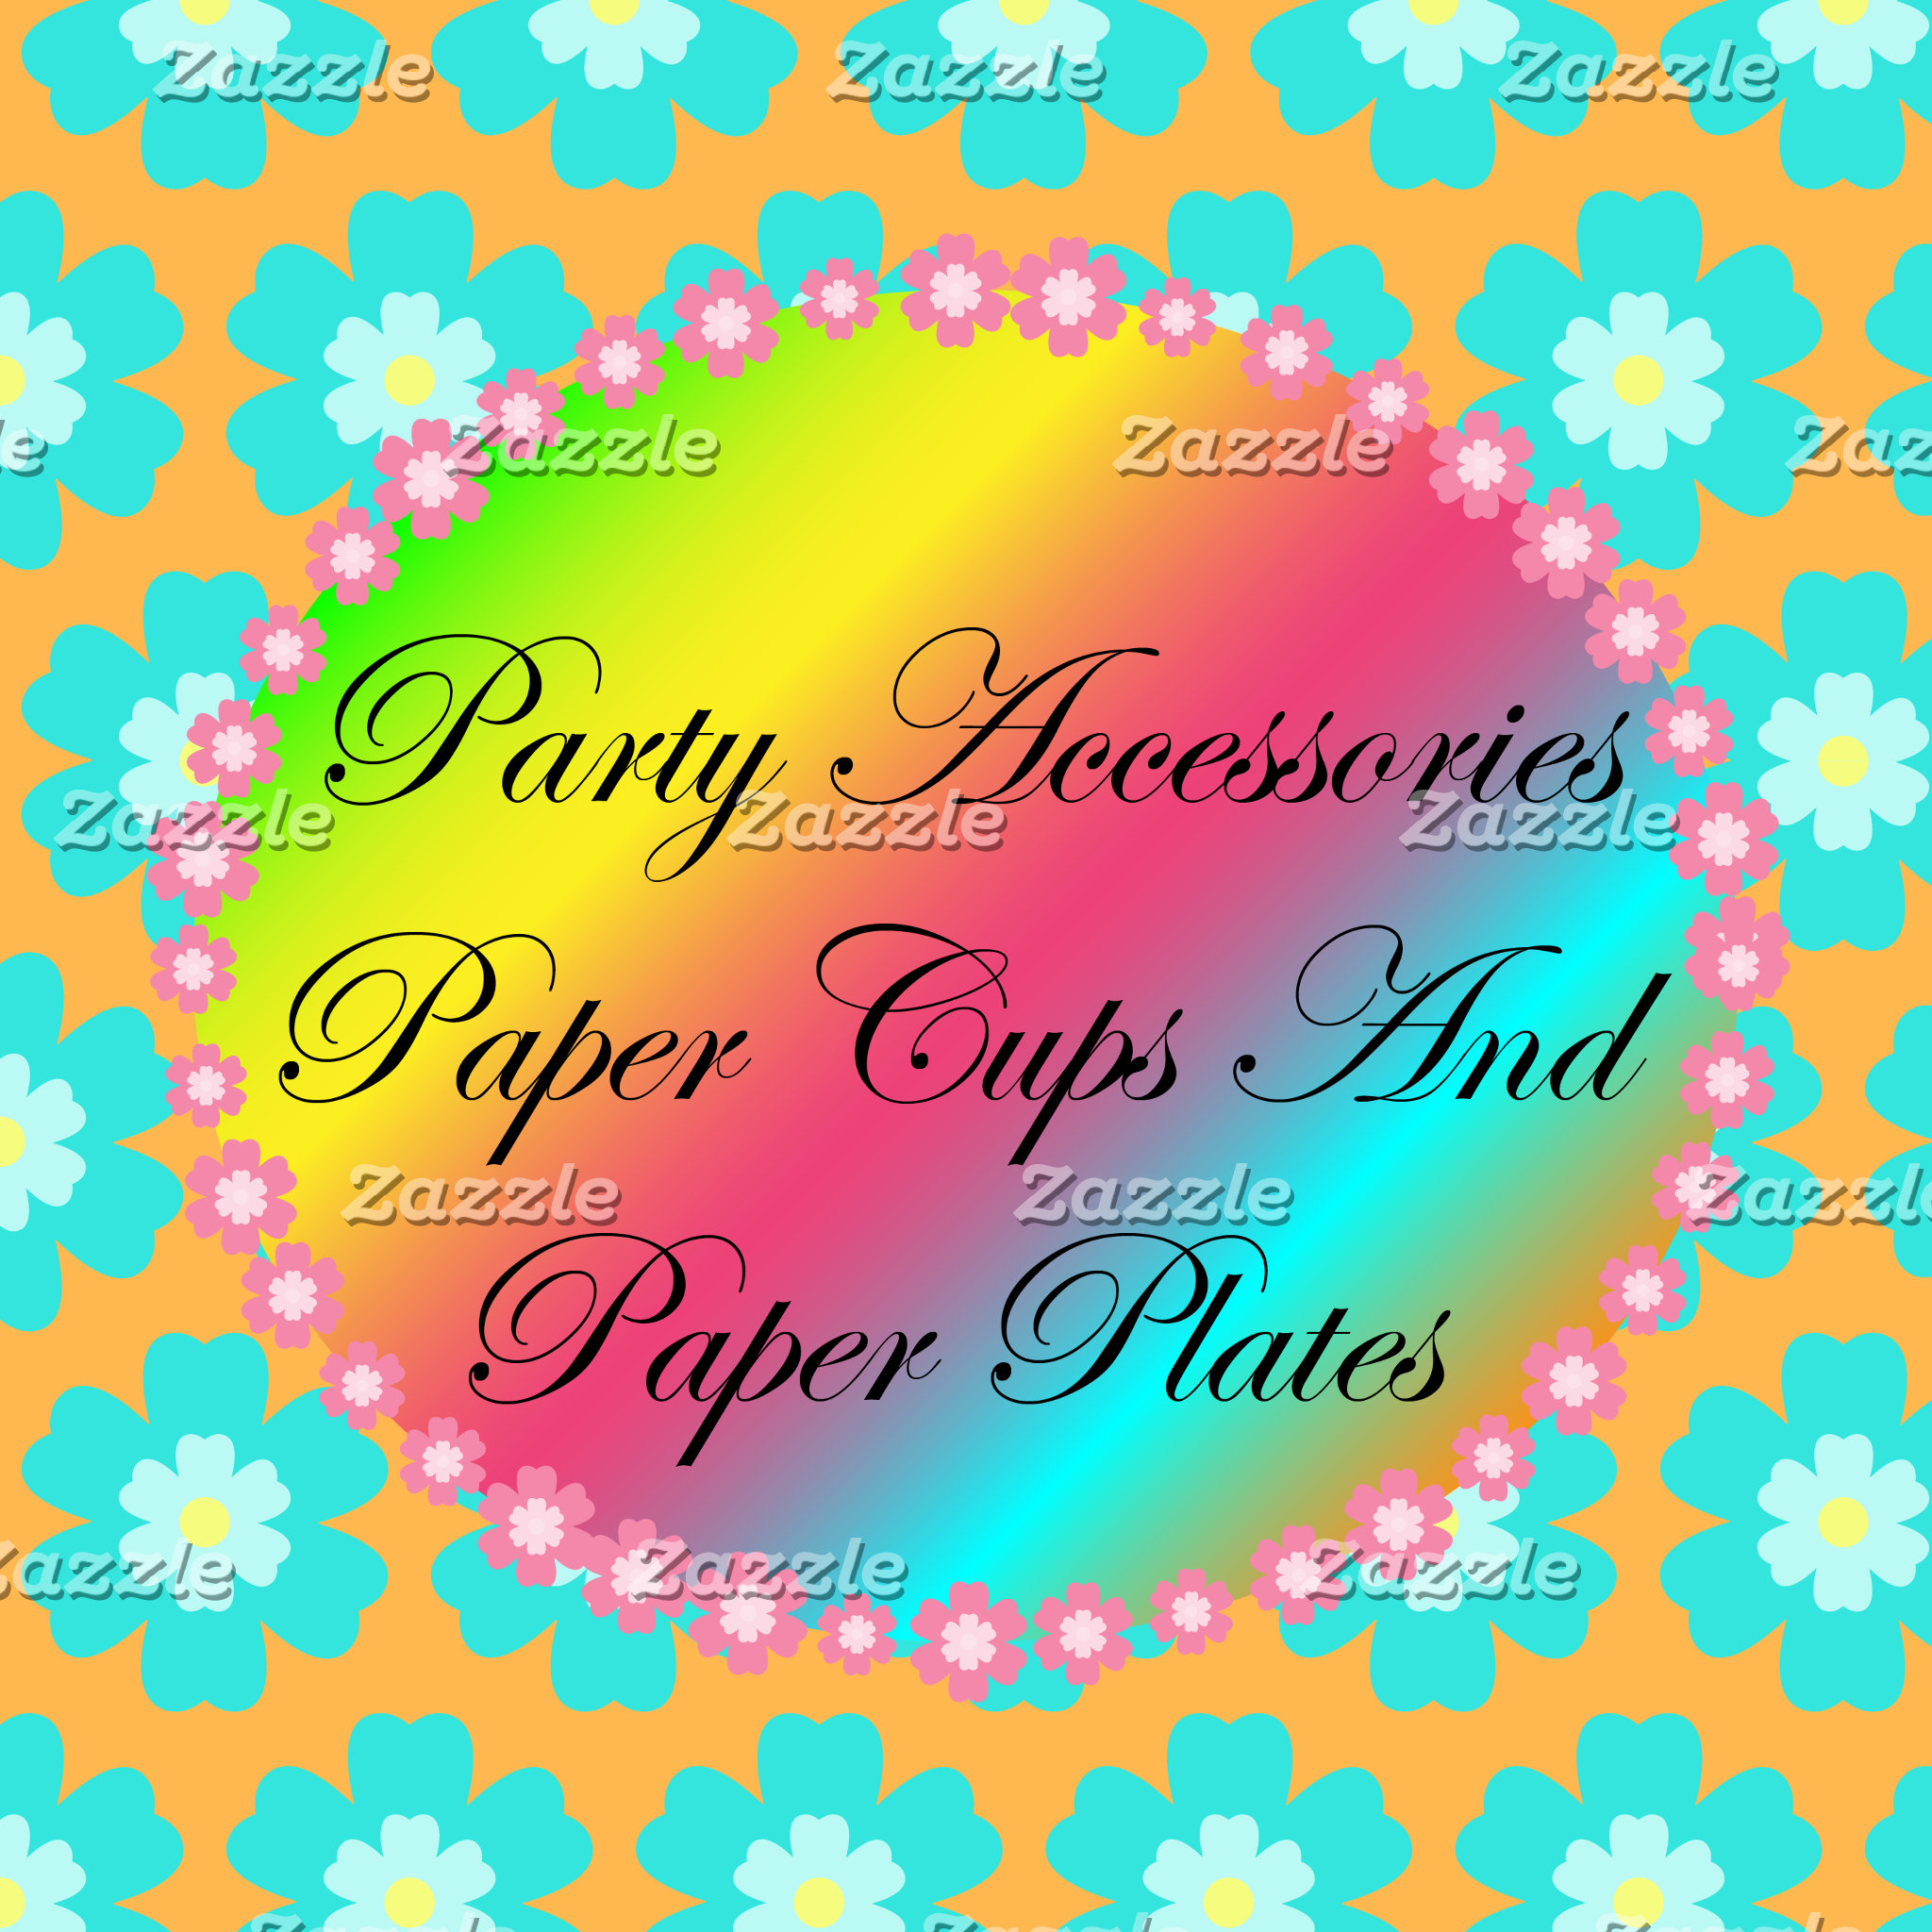 11. Paper Cups And Plates And Party Accessories